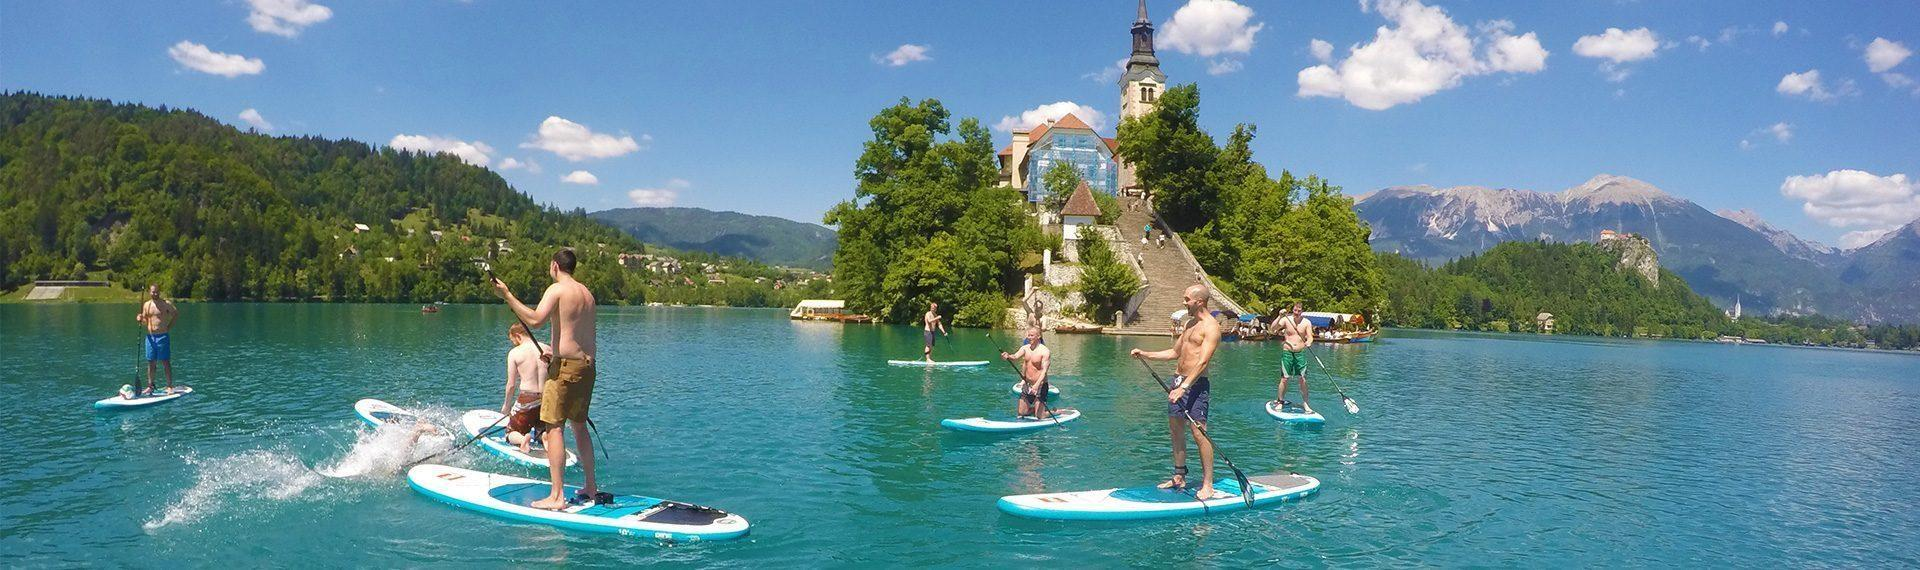 Paddle-boarding lake Bled, Slovenia